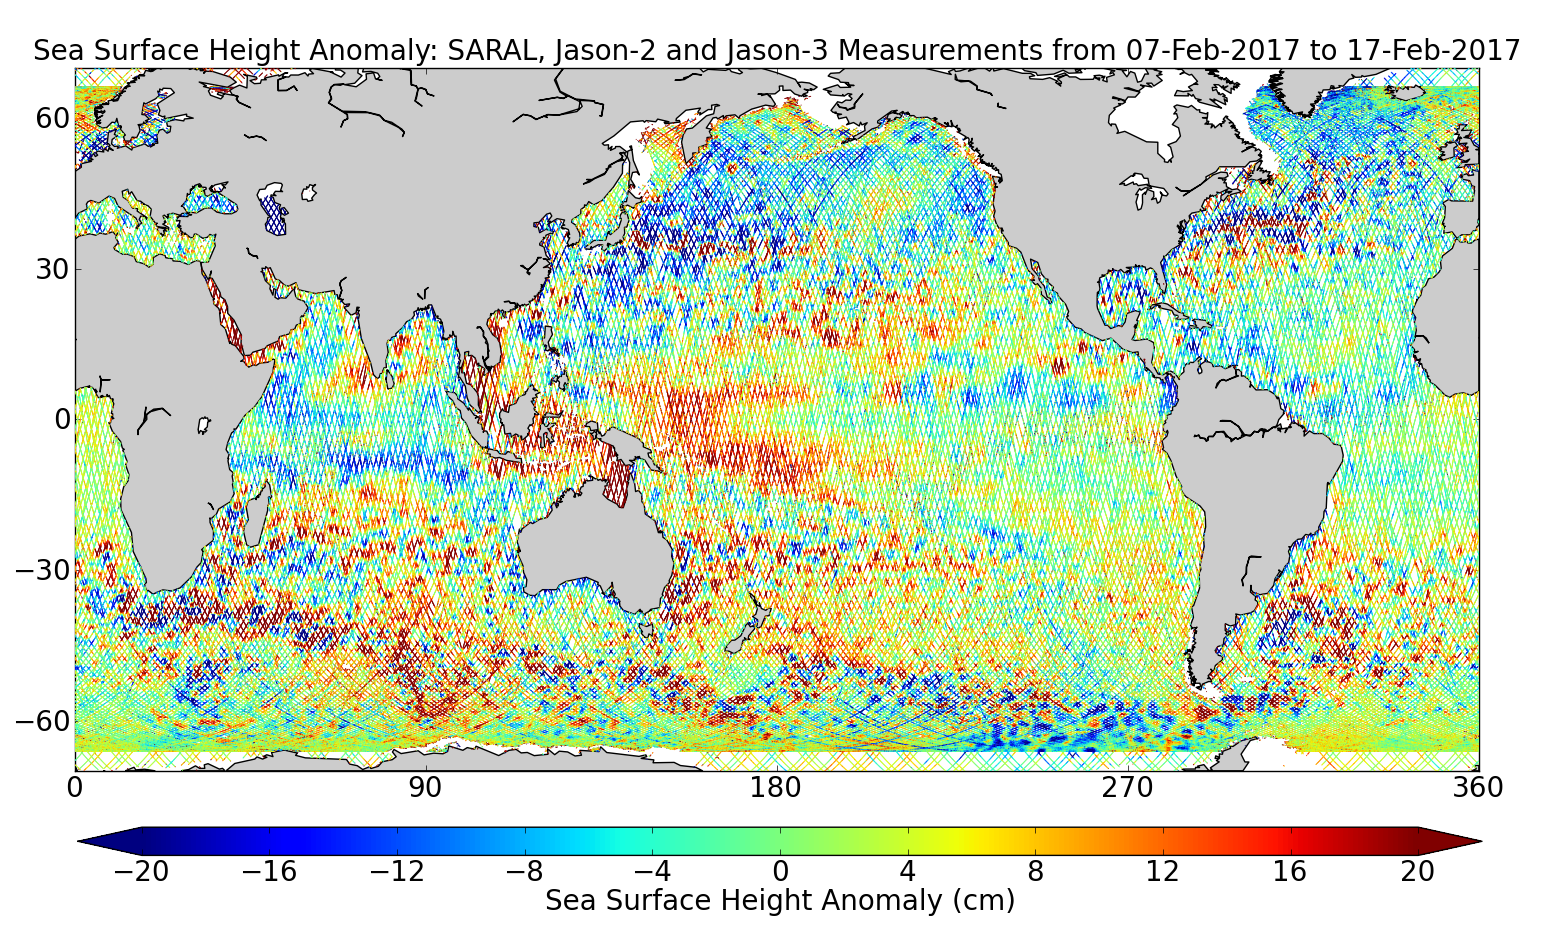 Sea Surface Height Anomaly: SARAL, Jason-2 and Jason-3 Measurements from 07-Feb-2017 to 17-Feb-2017